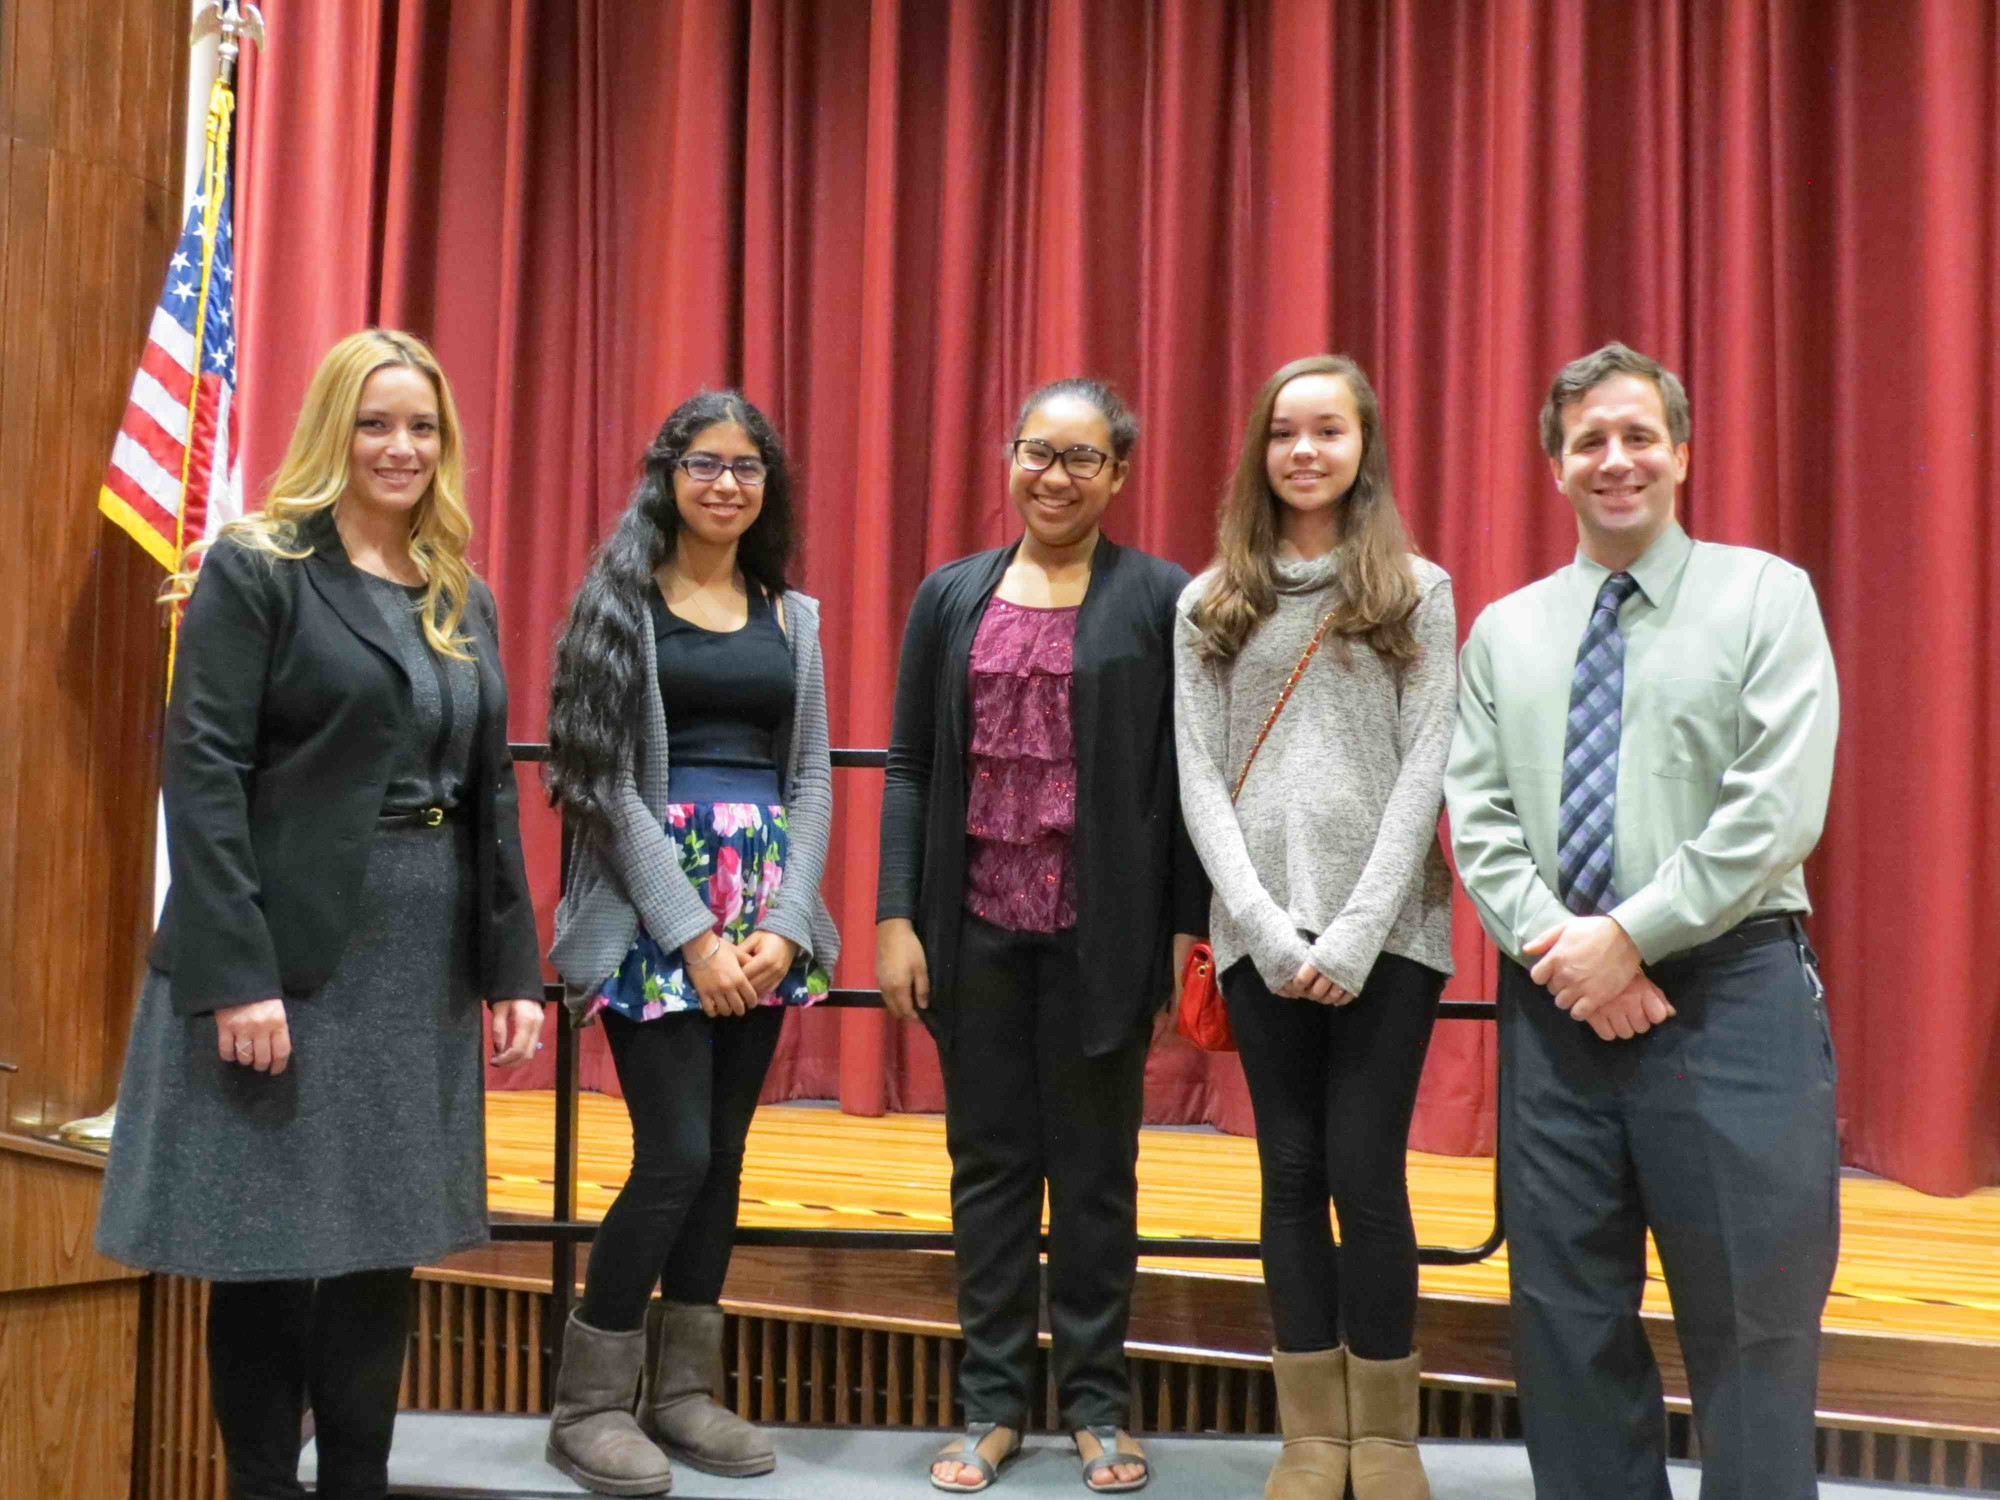 Woodland Middle School will be represented at the Long Island String Festival Association event this winter.